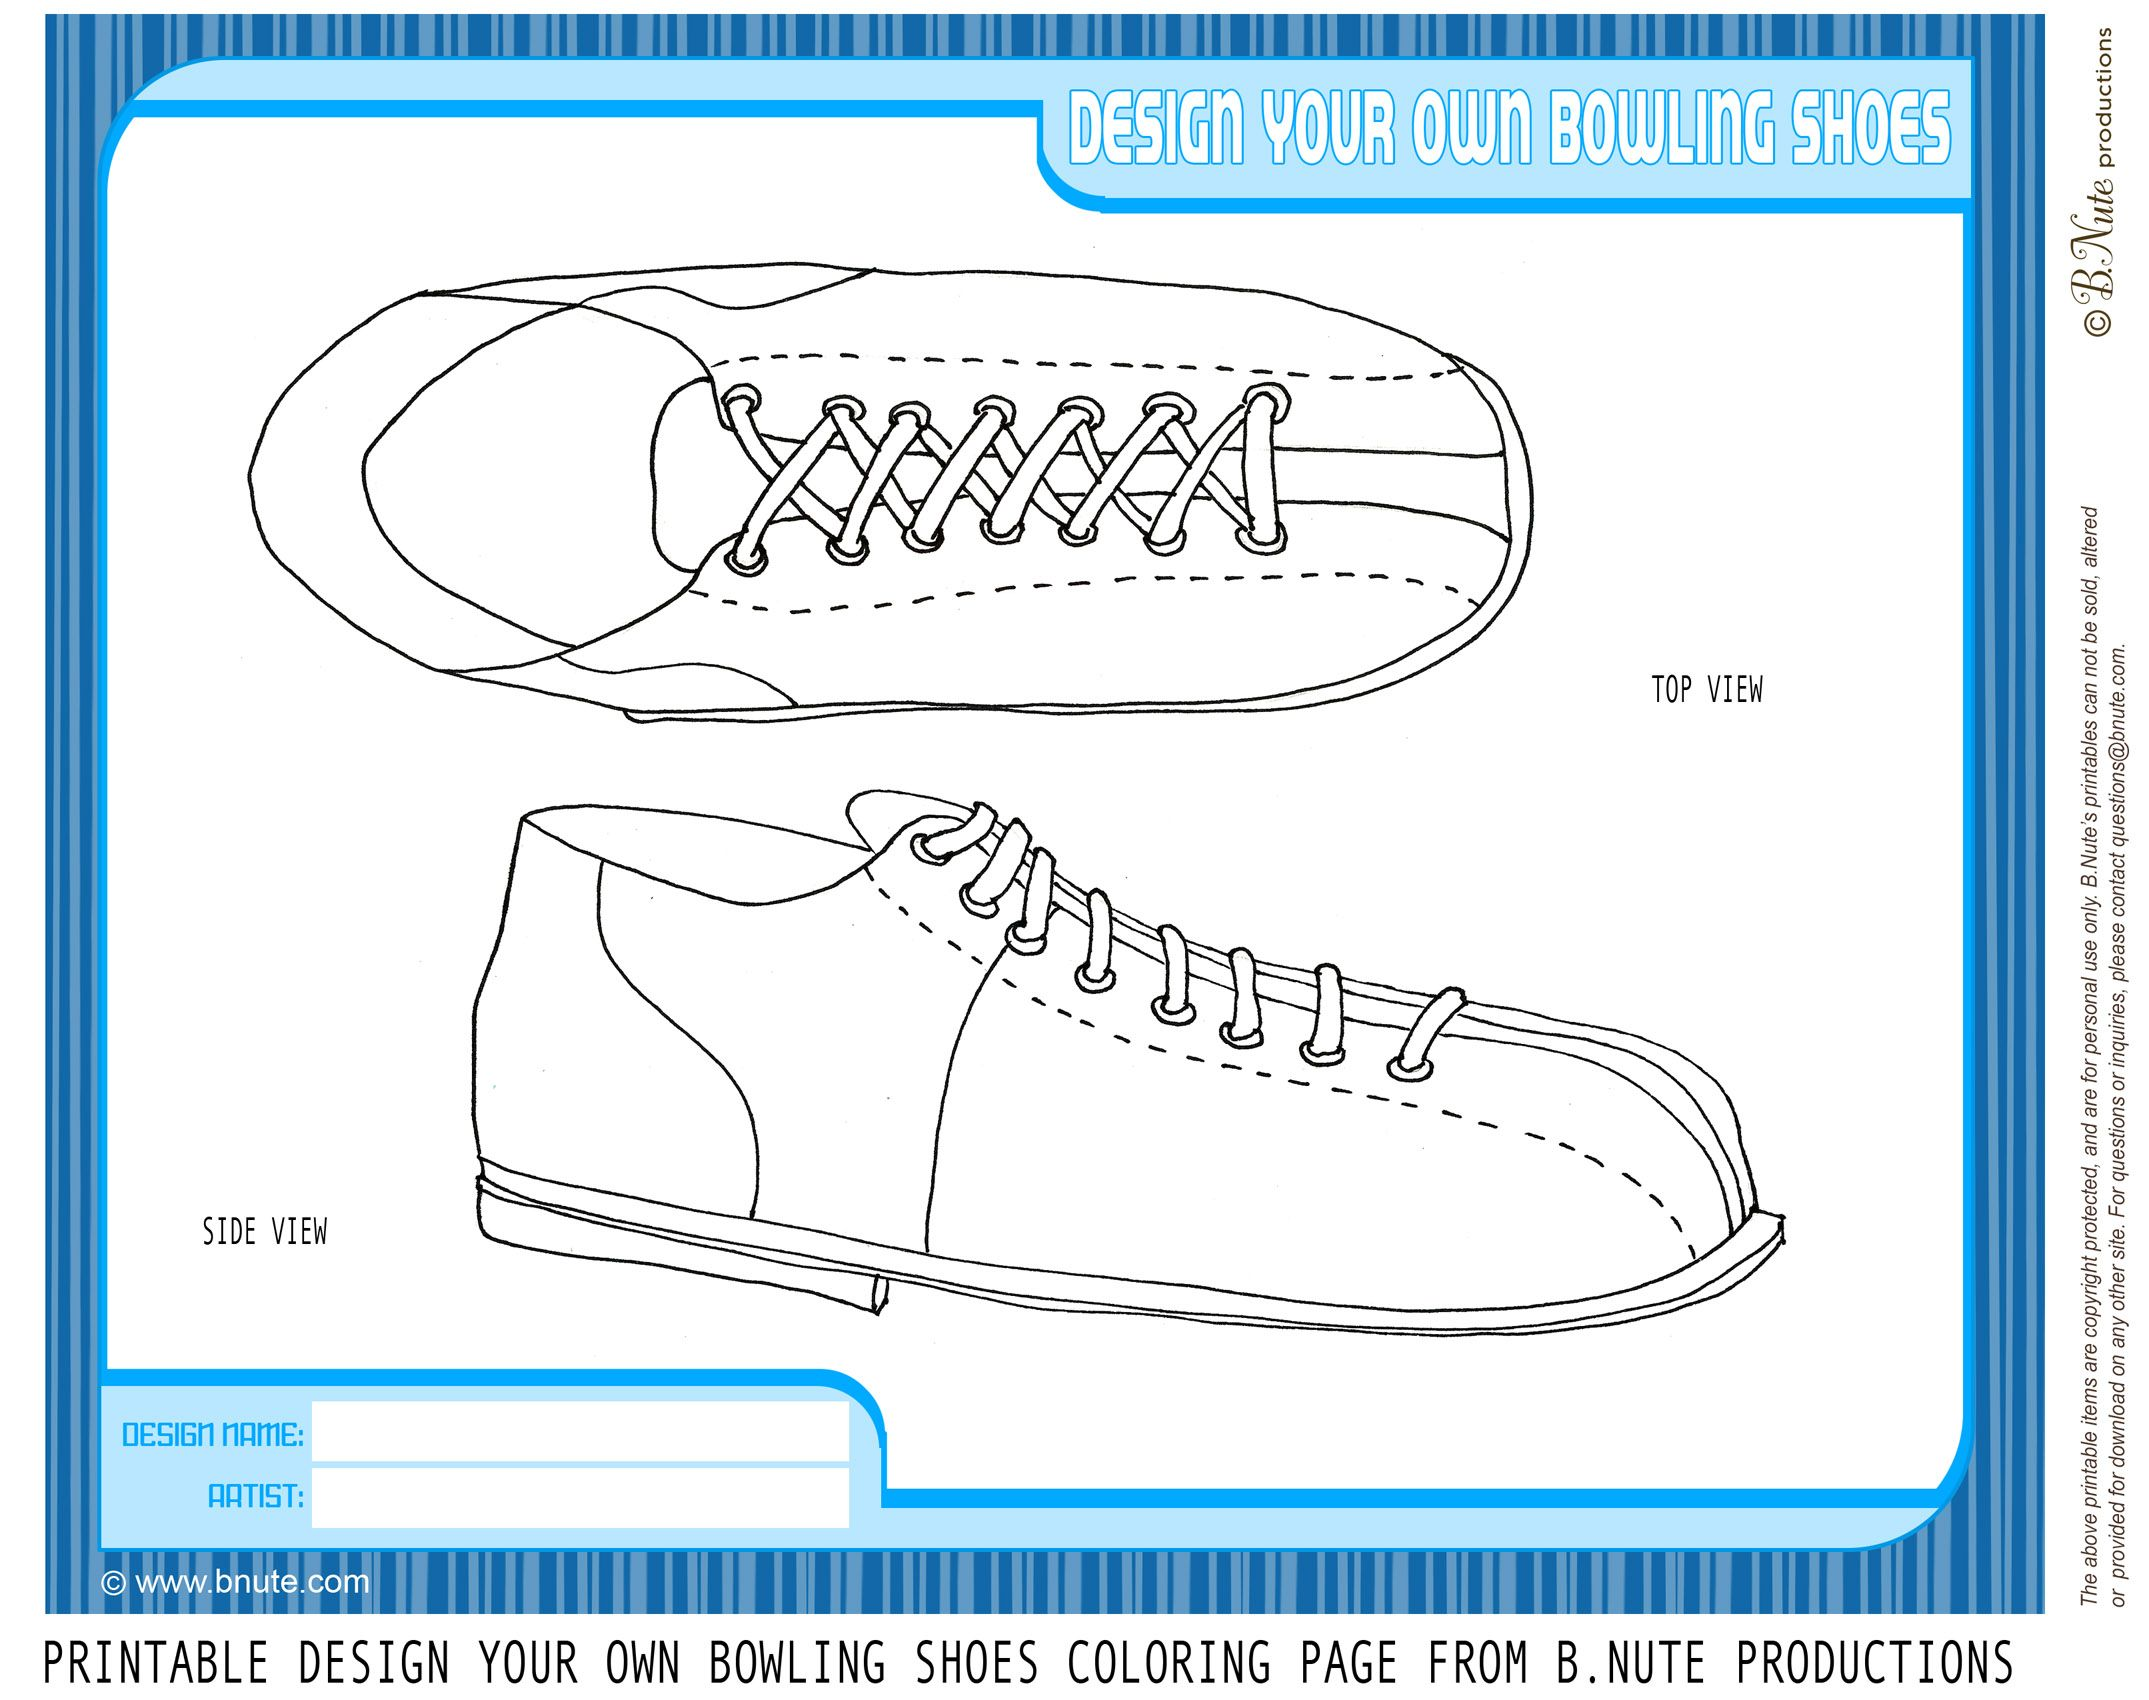 Free Printable Coloring Page Design Your Own Bowling Shoes